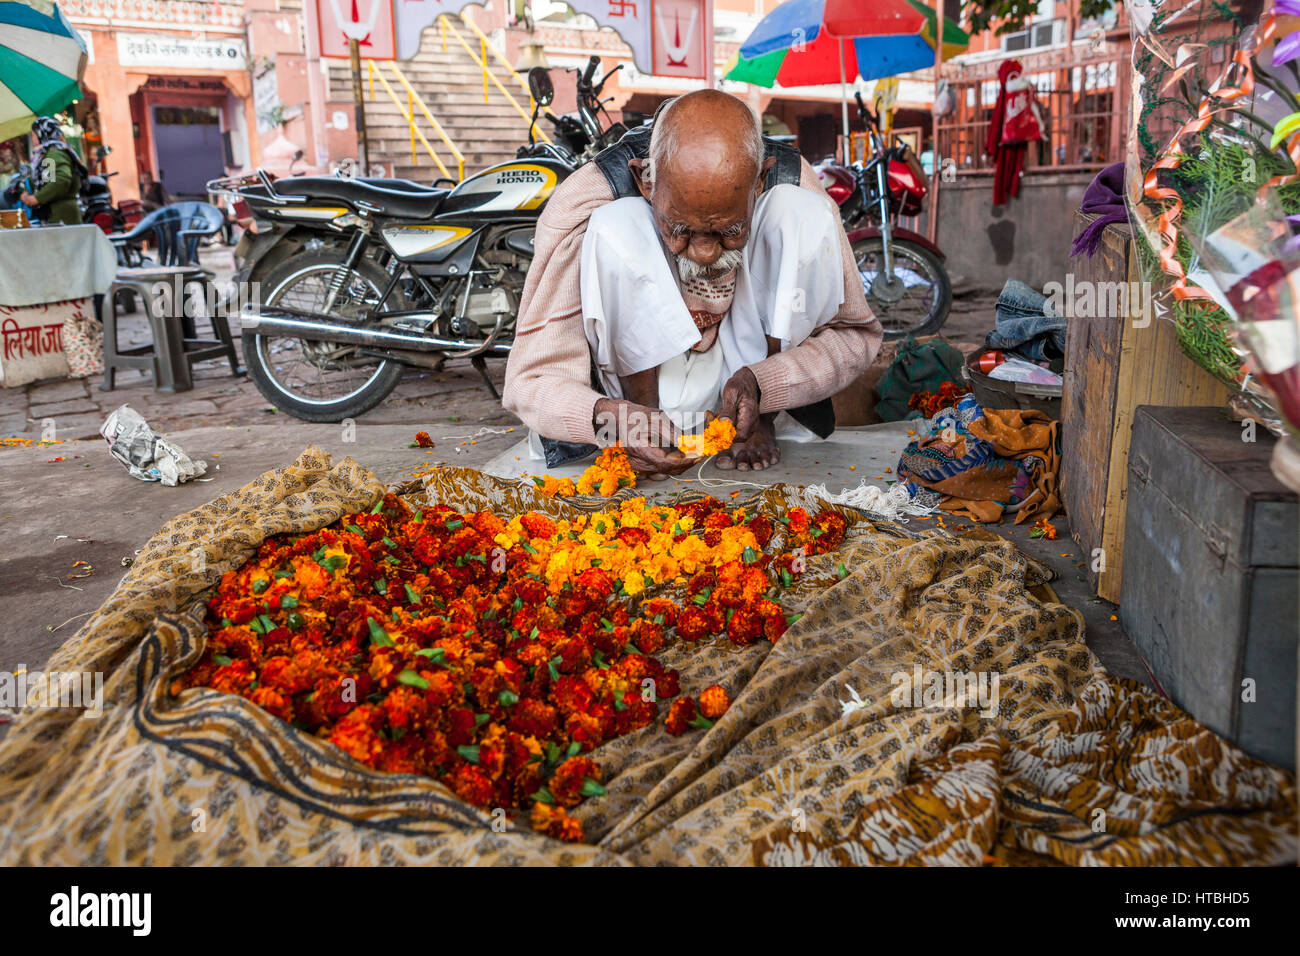 A man squatting in a market stringing flower heads onto a string to make a garland, Jaipur, Rajasthan, India. - Stock Image